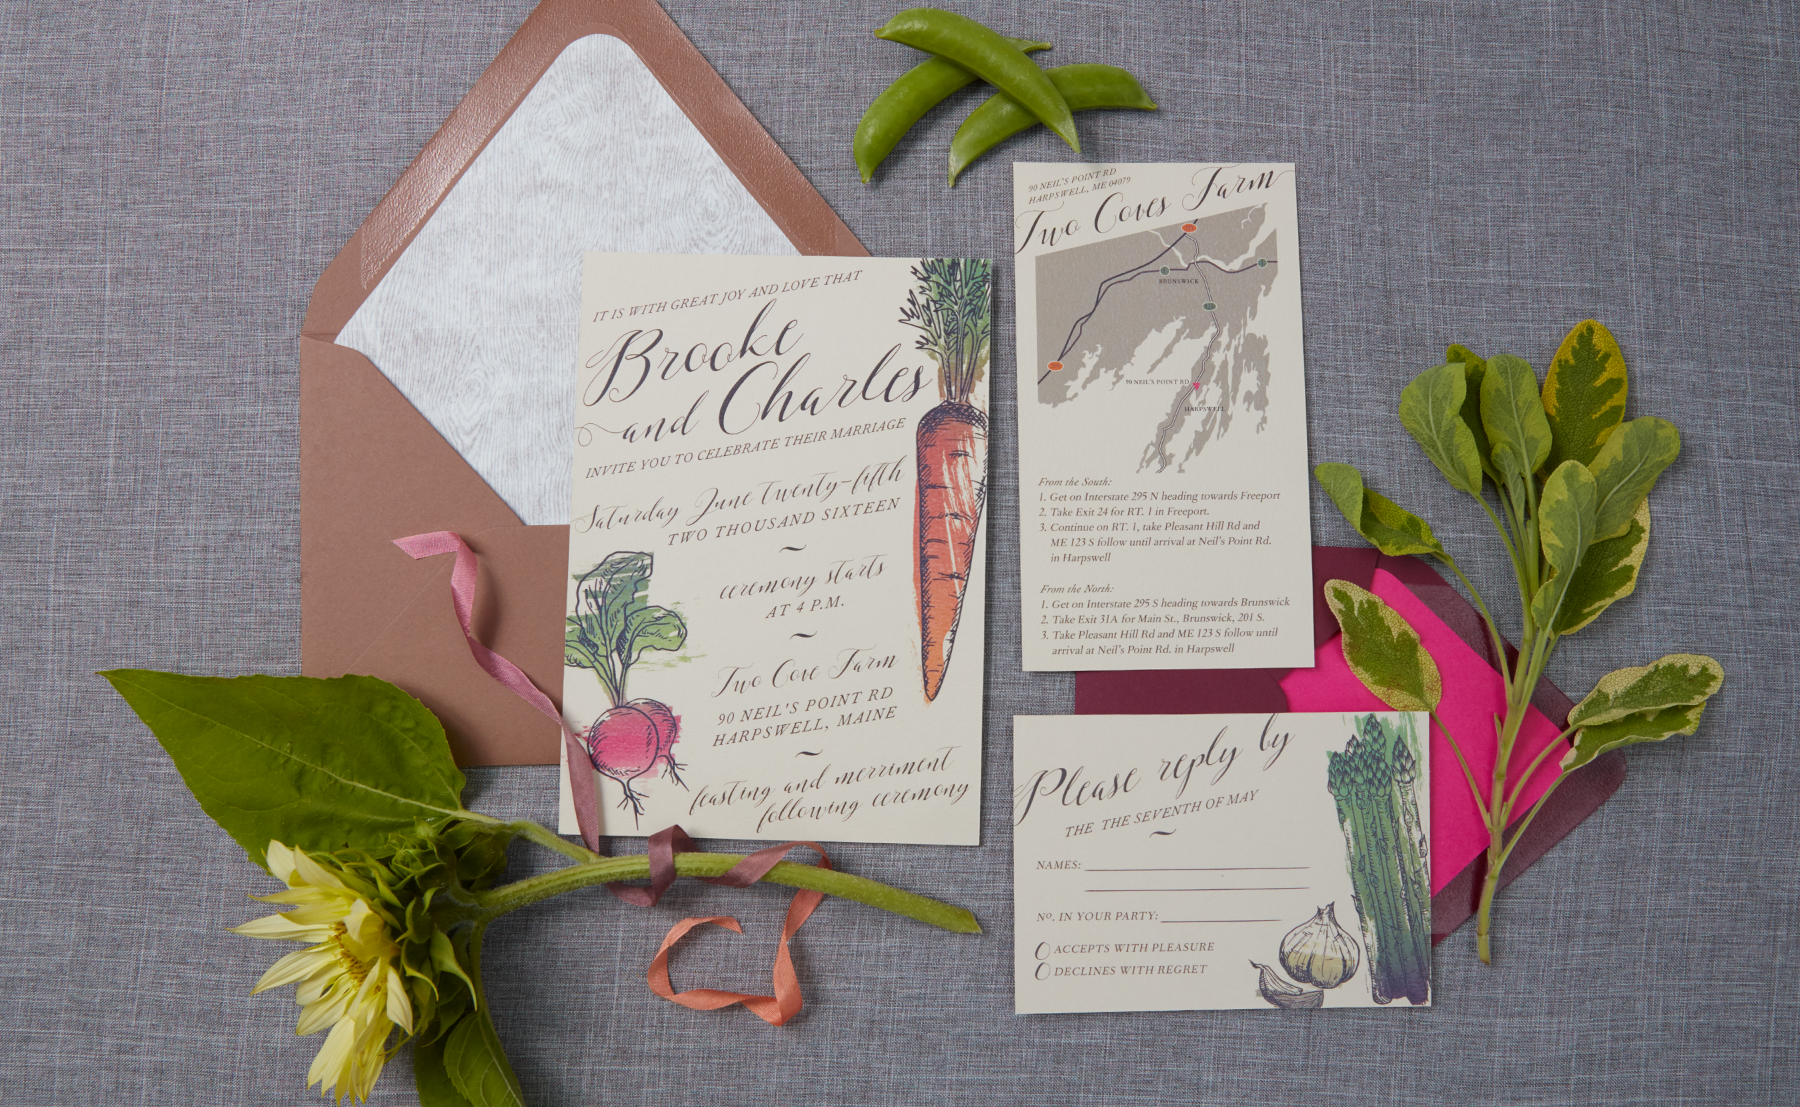 Brooke-Charles_Two-Cove-Farm-Wedding-Invitation-Suite1.png